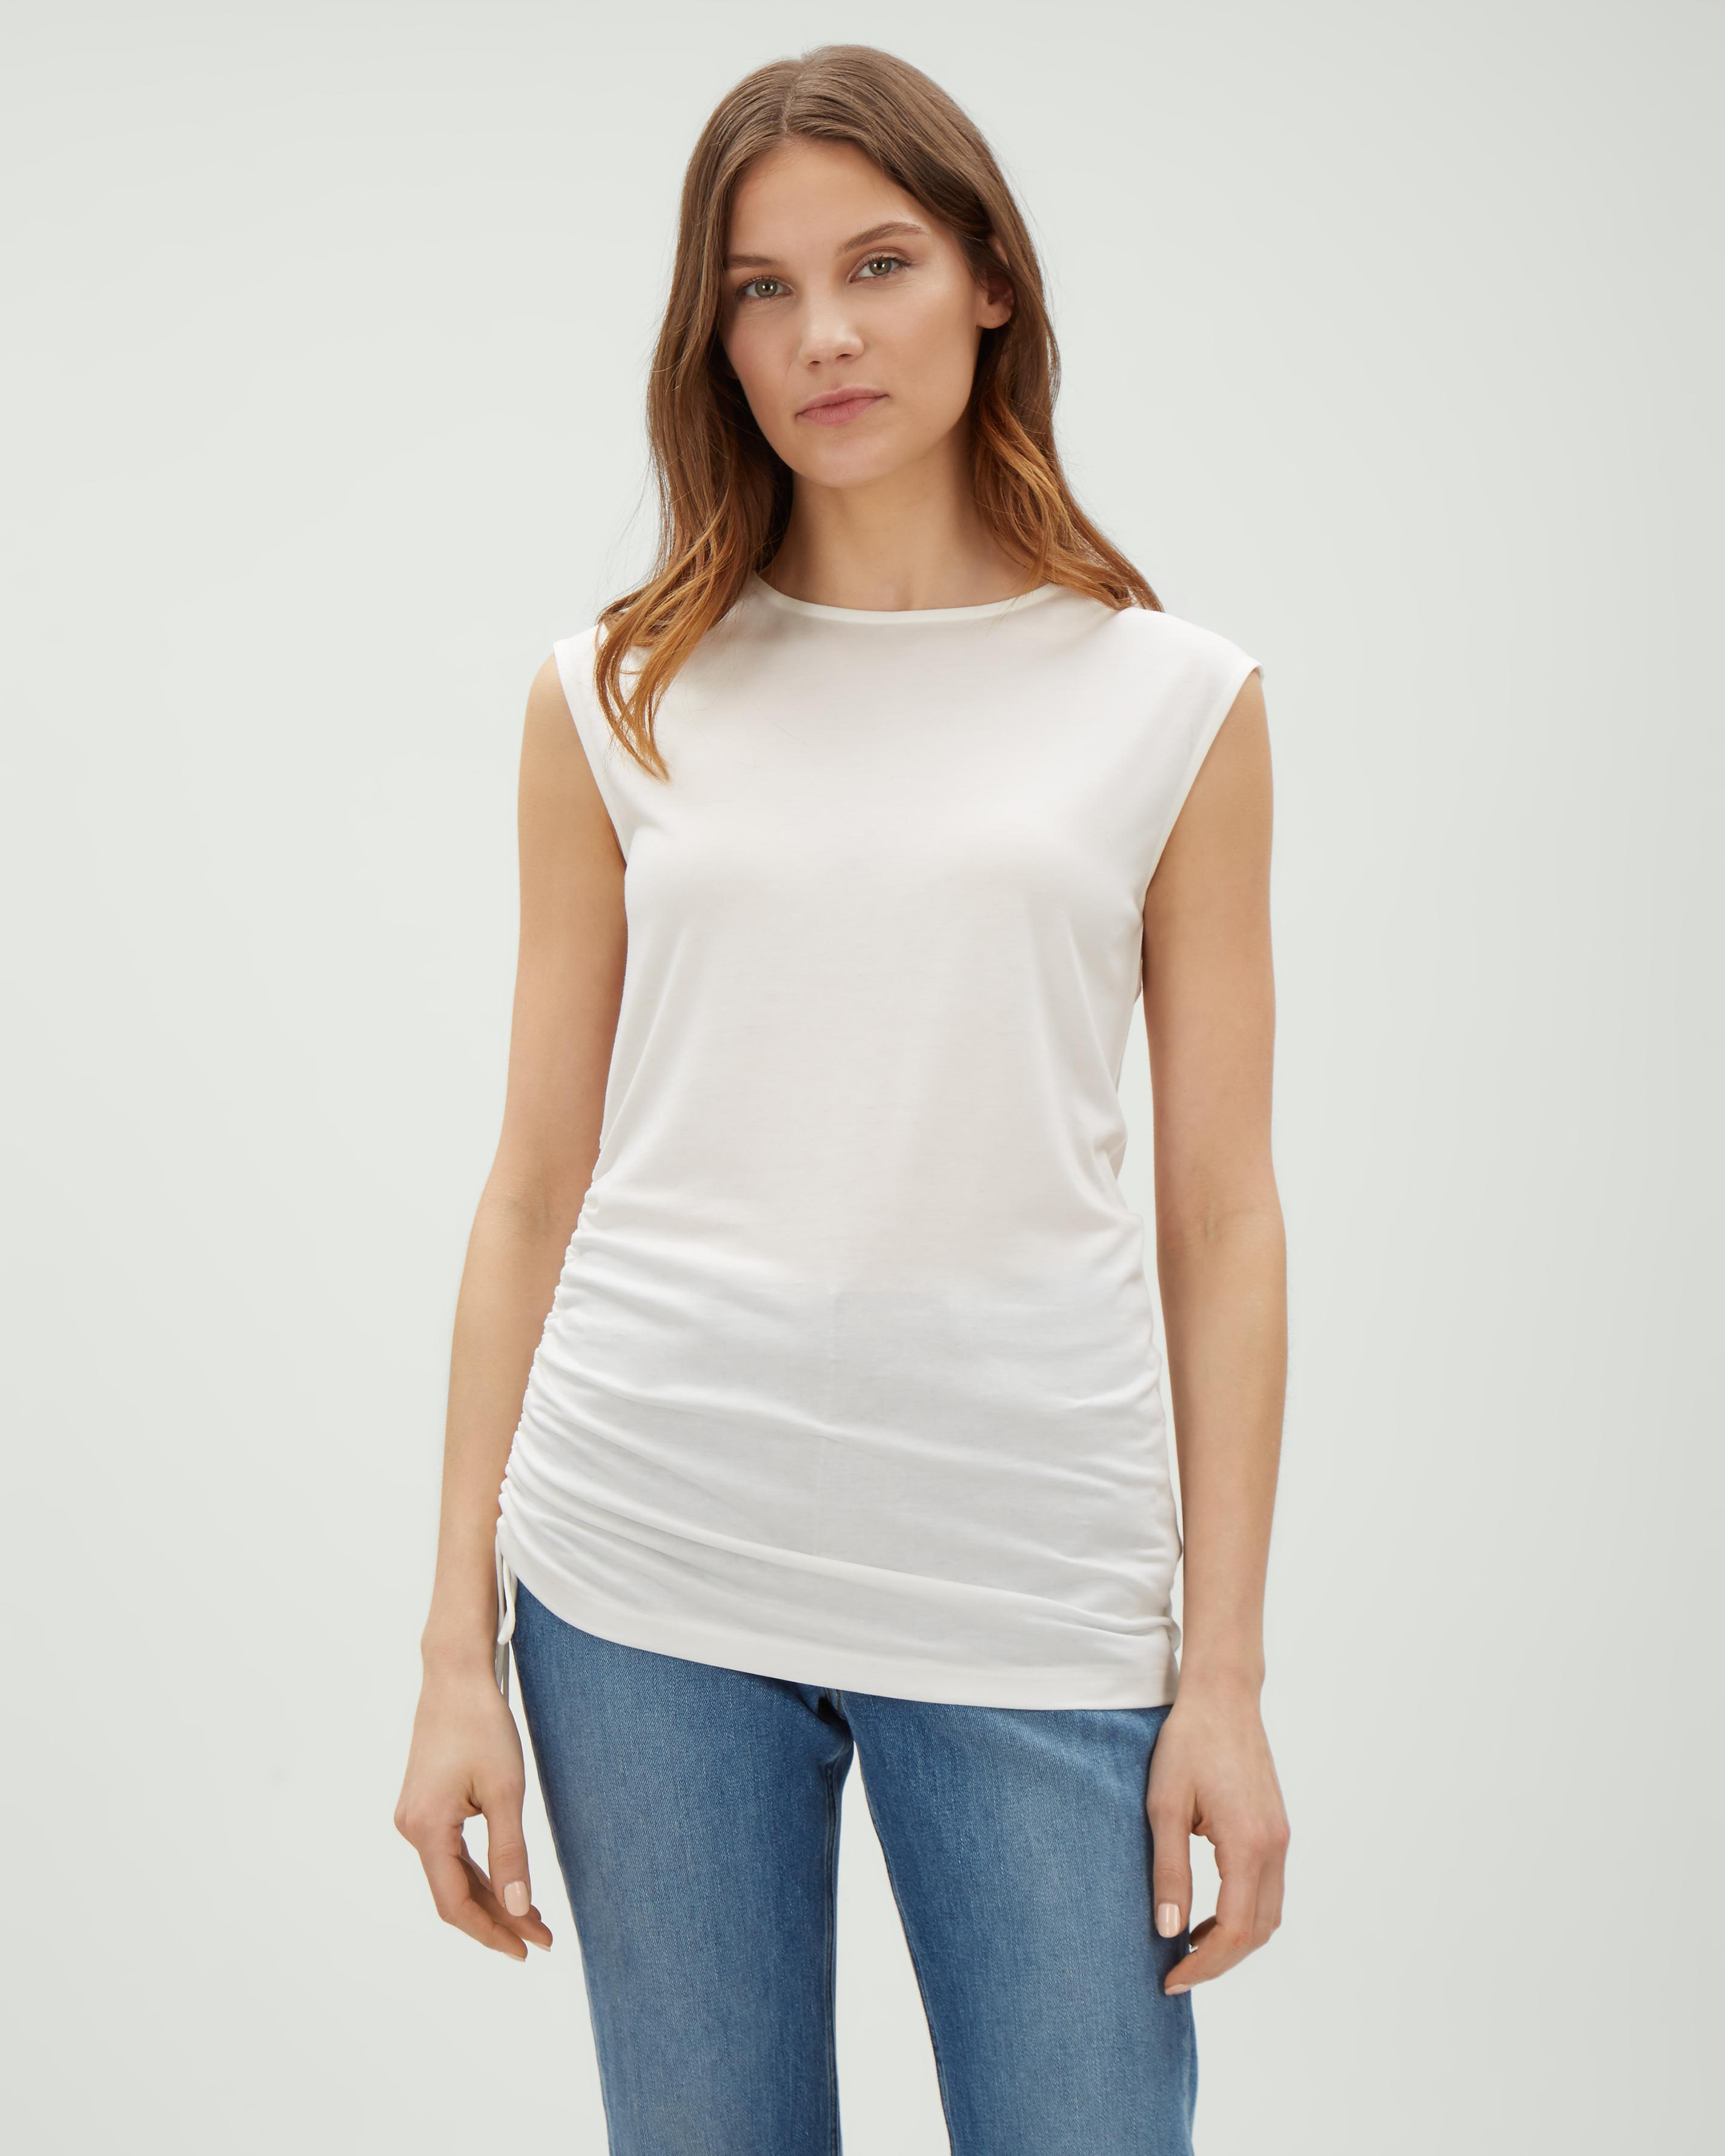 Clearance Factory Outlet Hot Sale For Sale Jaeger Slouchy Jersey Vest Top e0ZTEo3